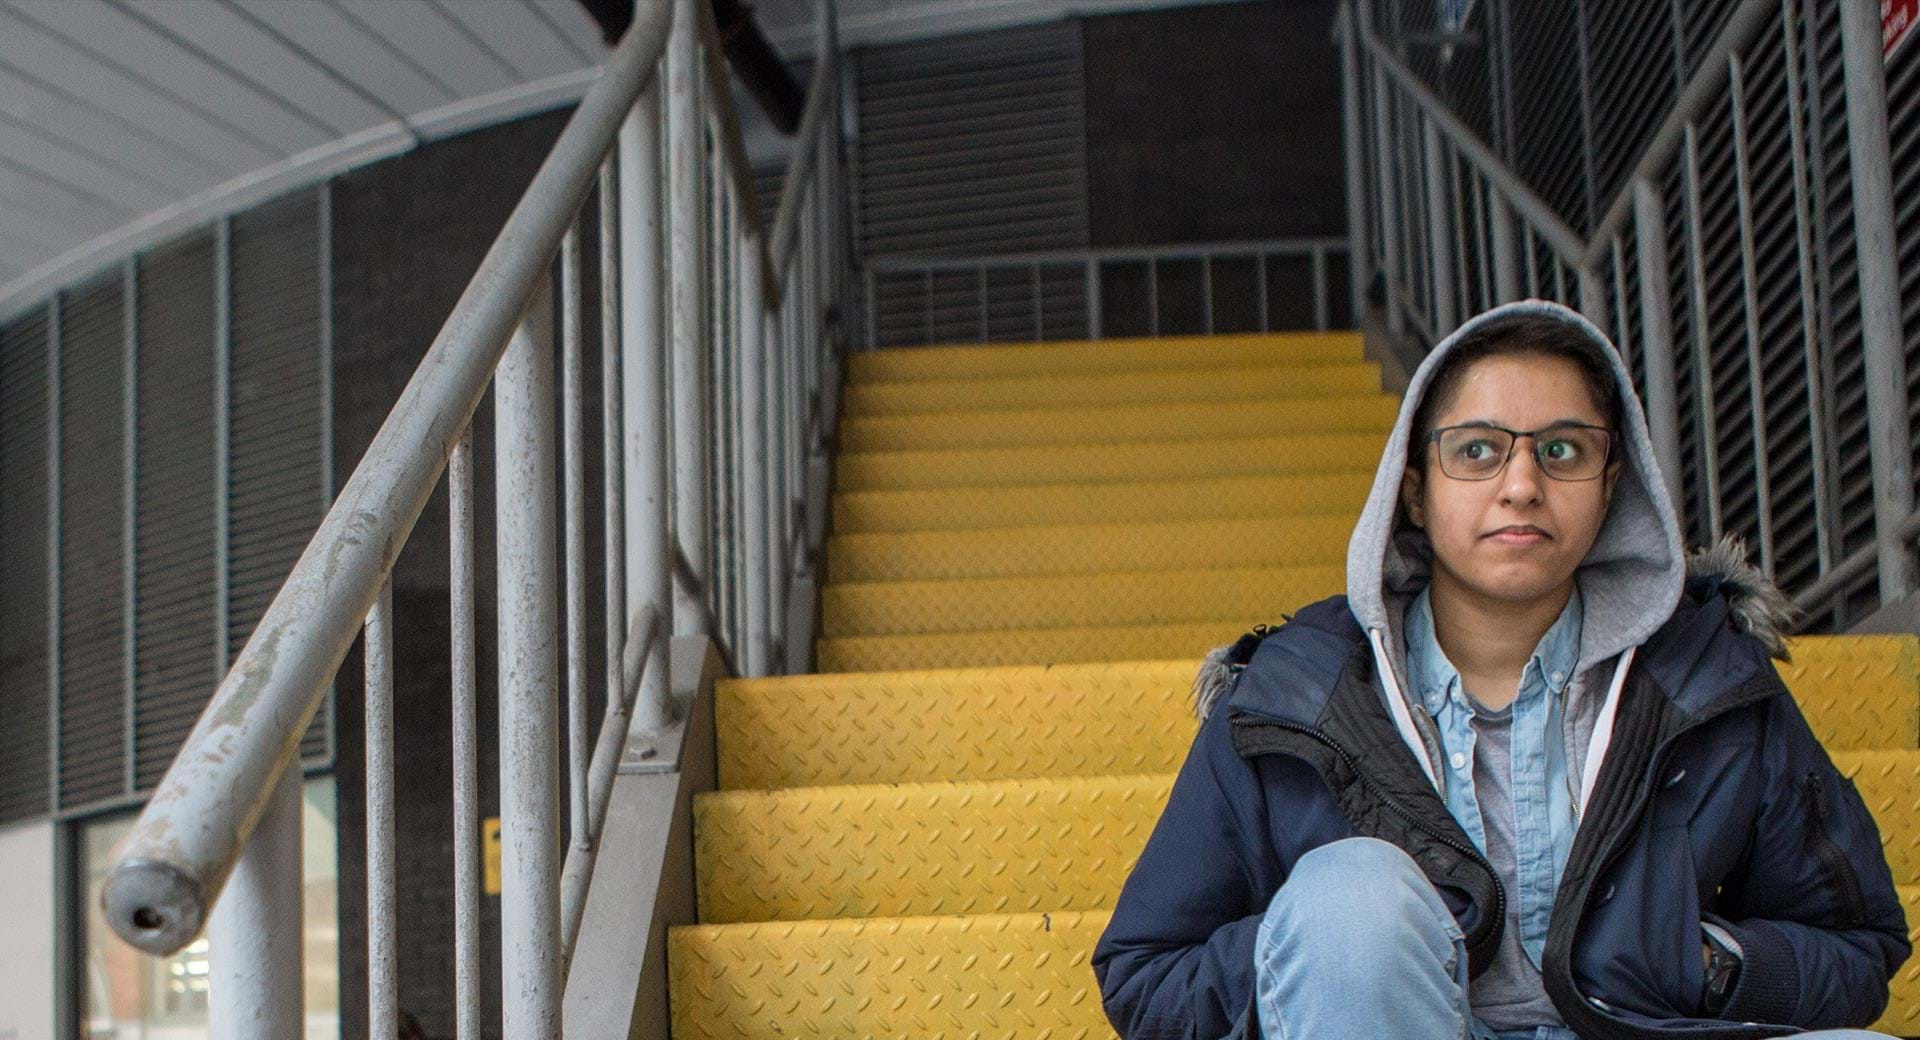 Centrepoint help give homeless young people like Aidan a future.